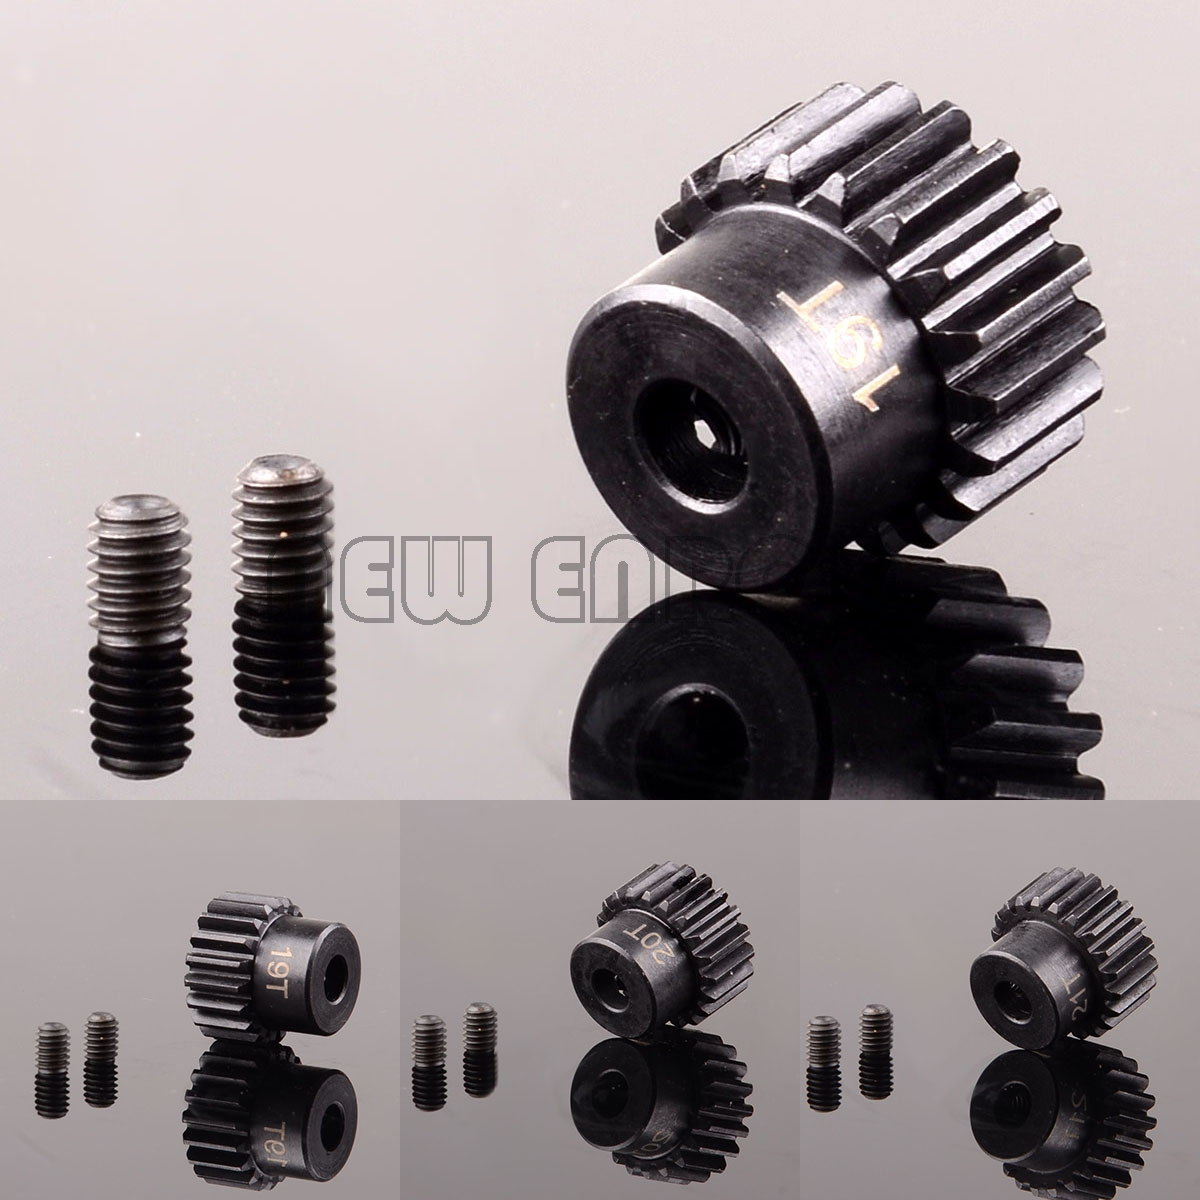 NEW ENRON Moter Gear/Pinion Gear 19T 20T 21T M0.8 32P 5MM TRV-(19-21)T FOR Traxxas Revo Summit Slash